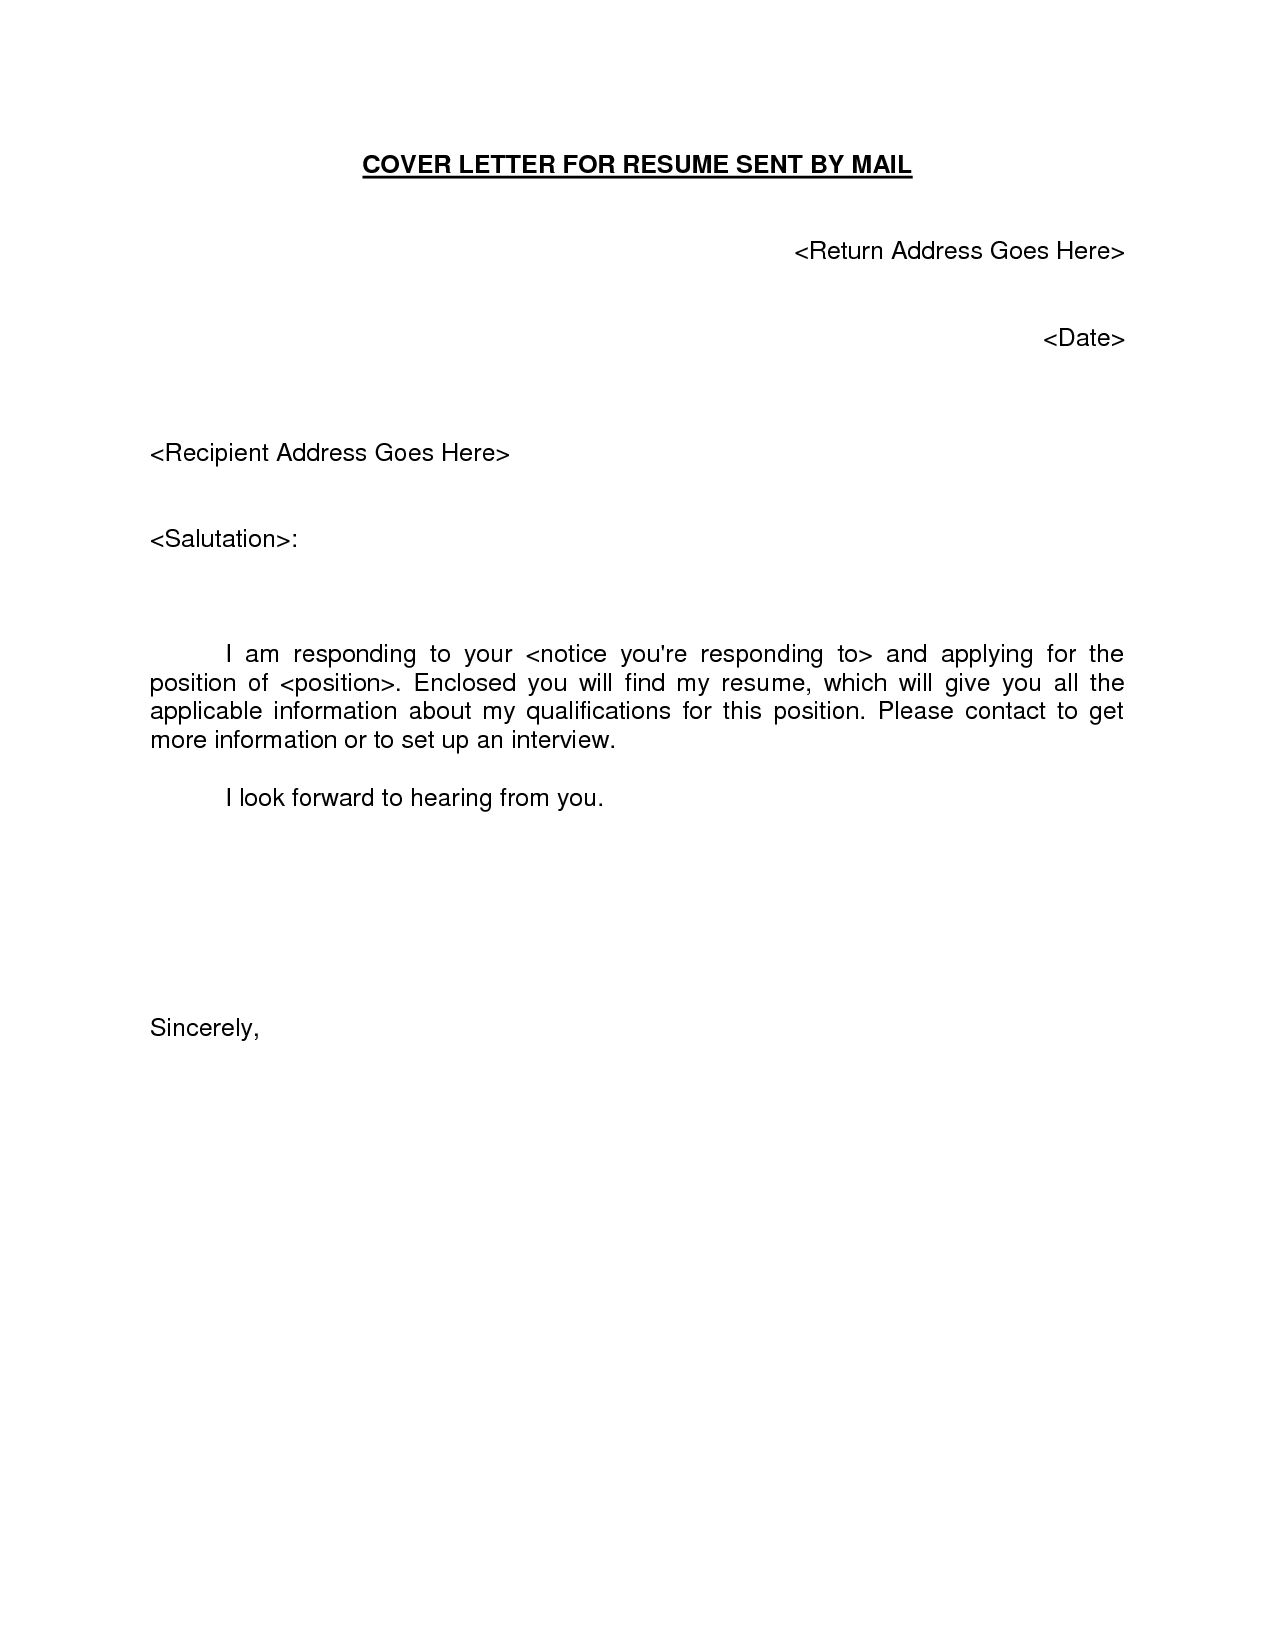 Good Cover Letter Template Cover Letter Resume Examples Email Style Resumes Professional